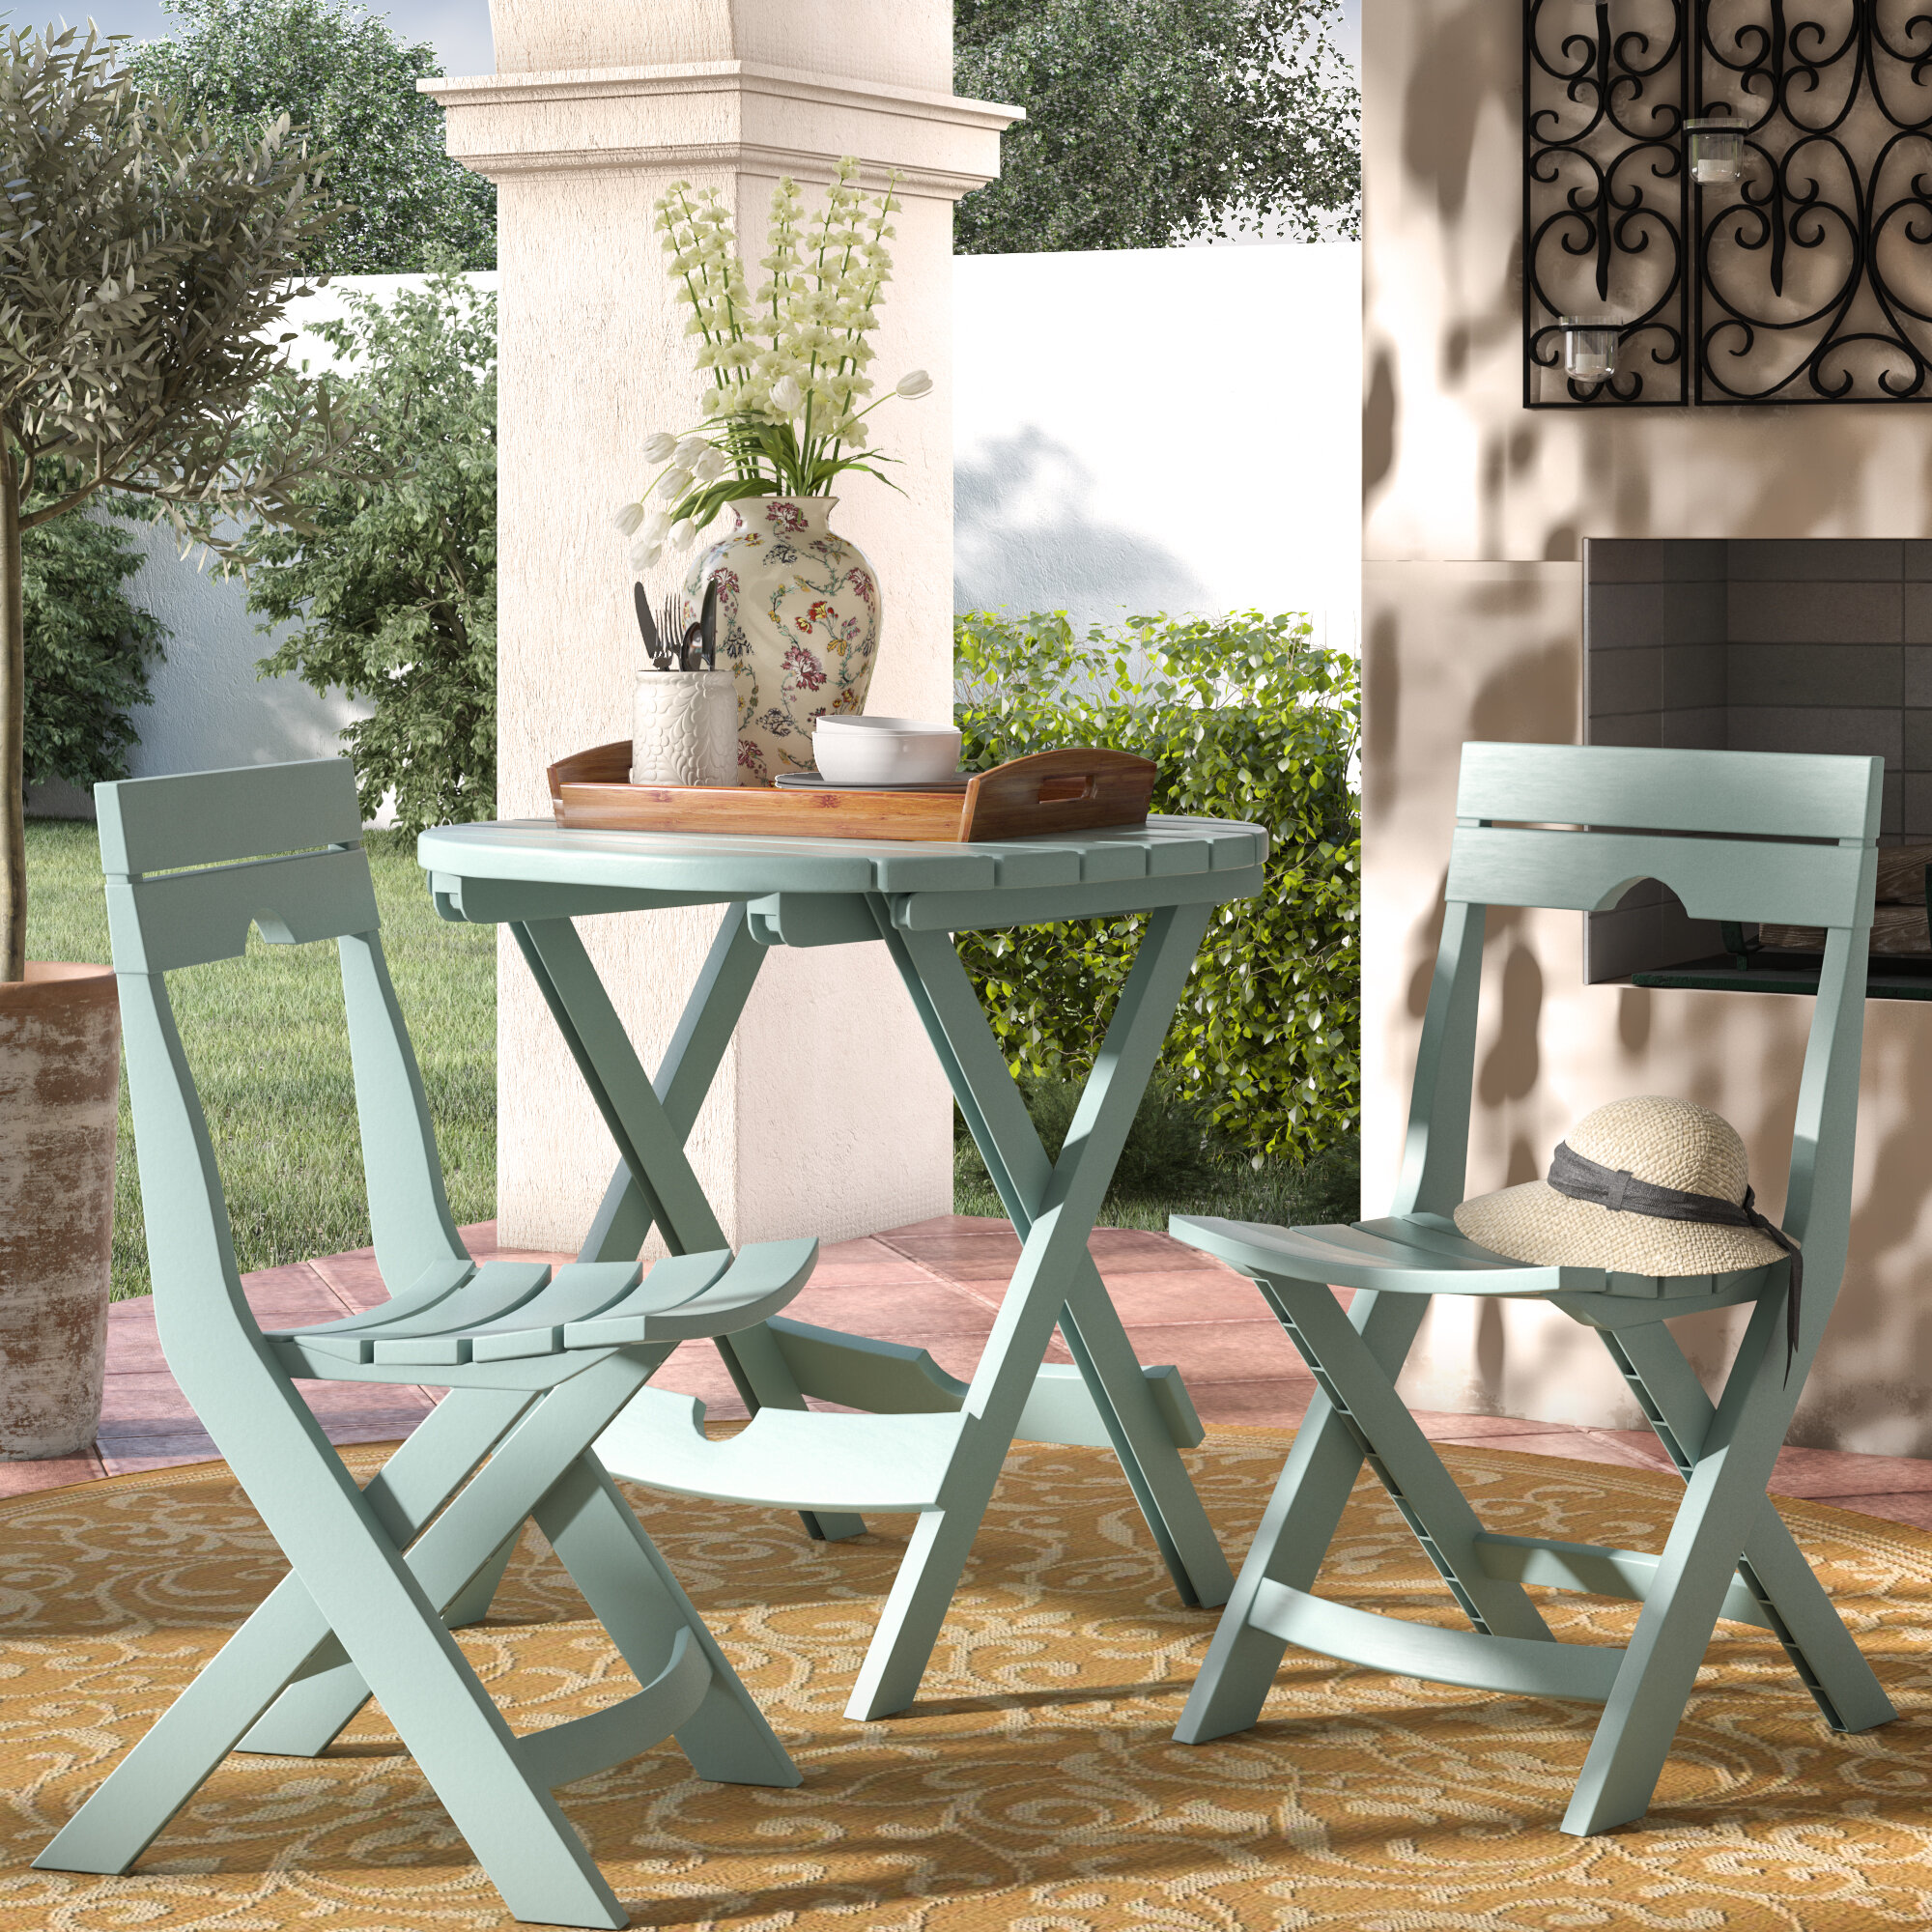 rose img htm patio piece greenhurst c bistro day set with delivery gablemere detail next three in from grey worldstores sets